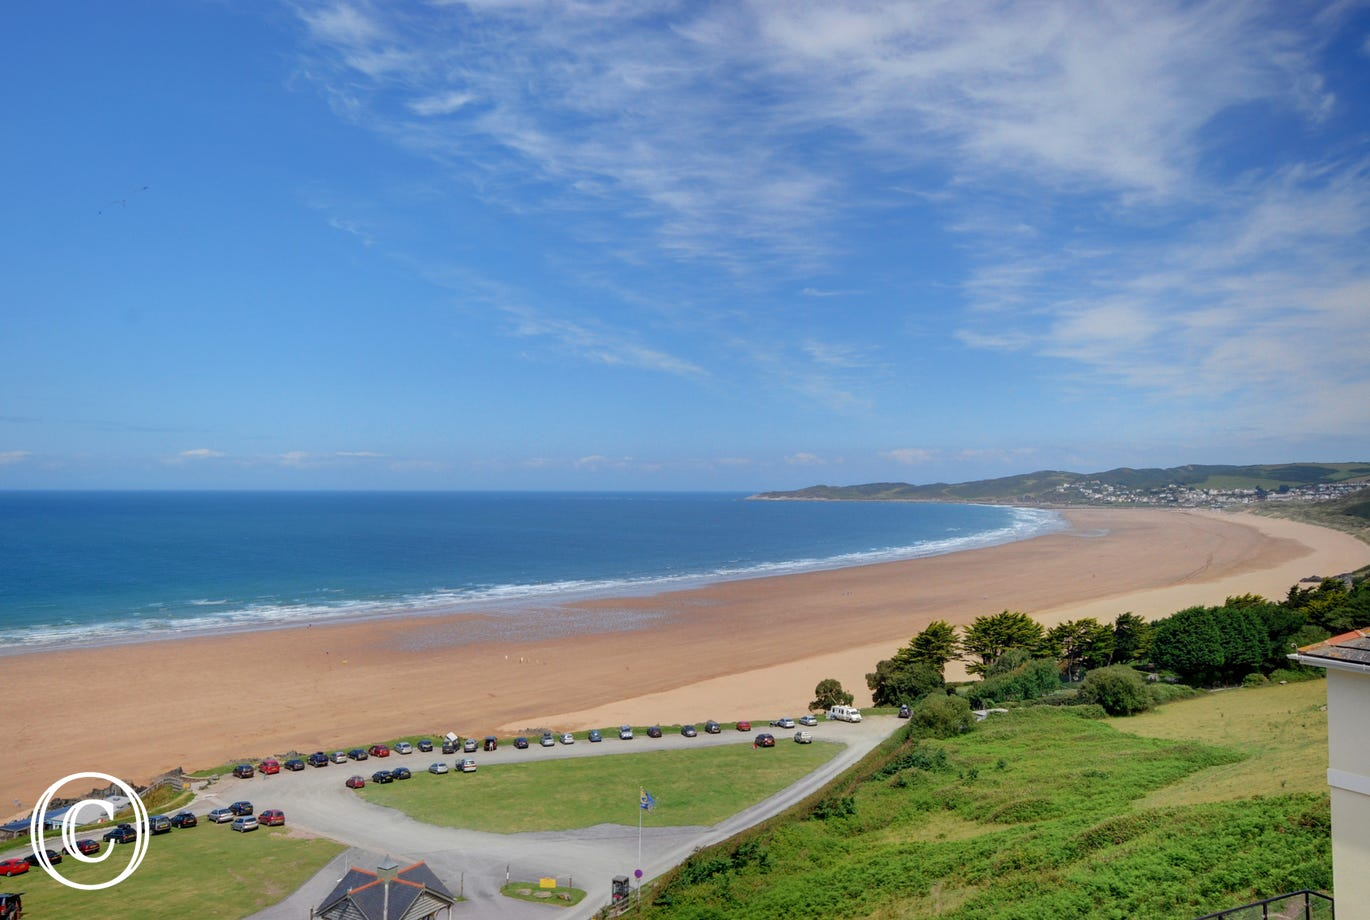 Clifton Court overlooks the glorious beach at Putsborough, two miles from Croyde and three miles from Woolacombe